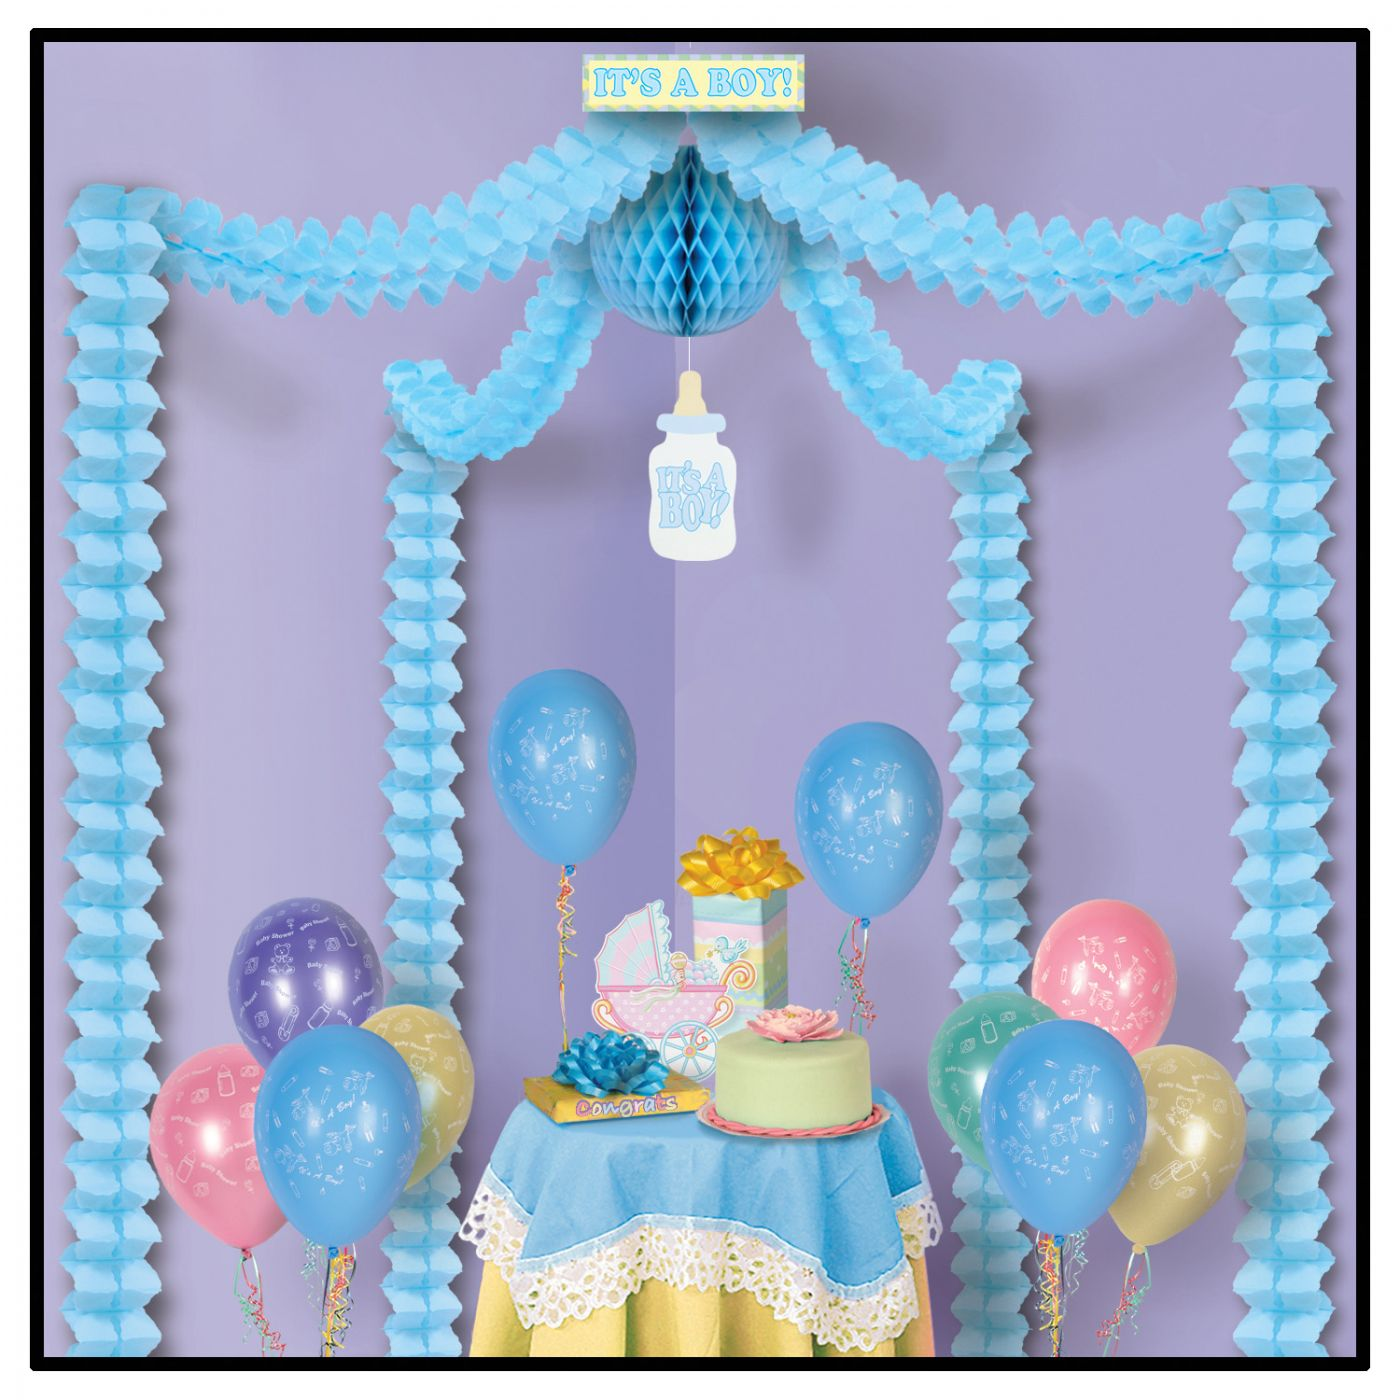 It's A Boy! Party Canopy (6) image